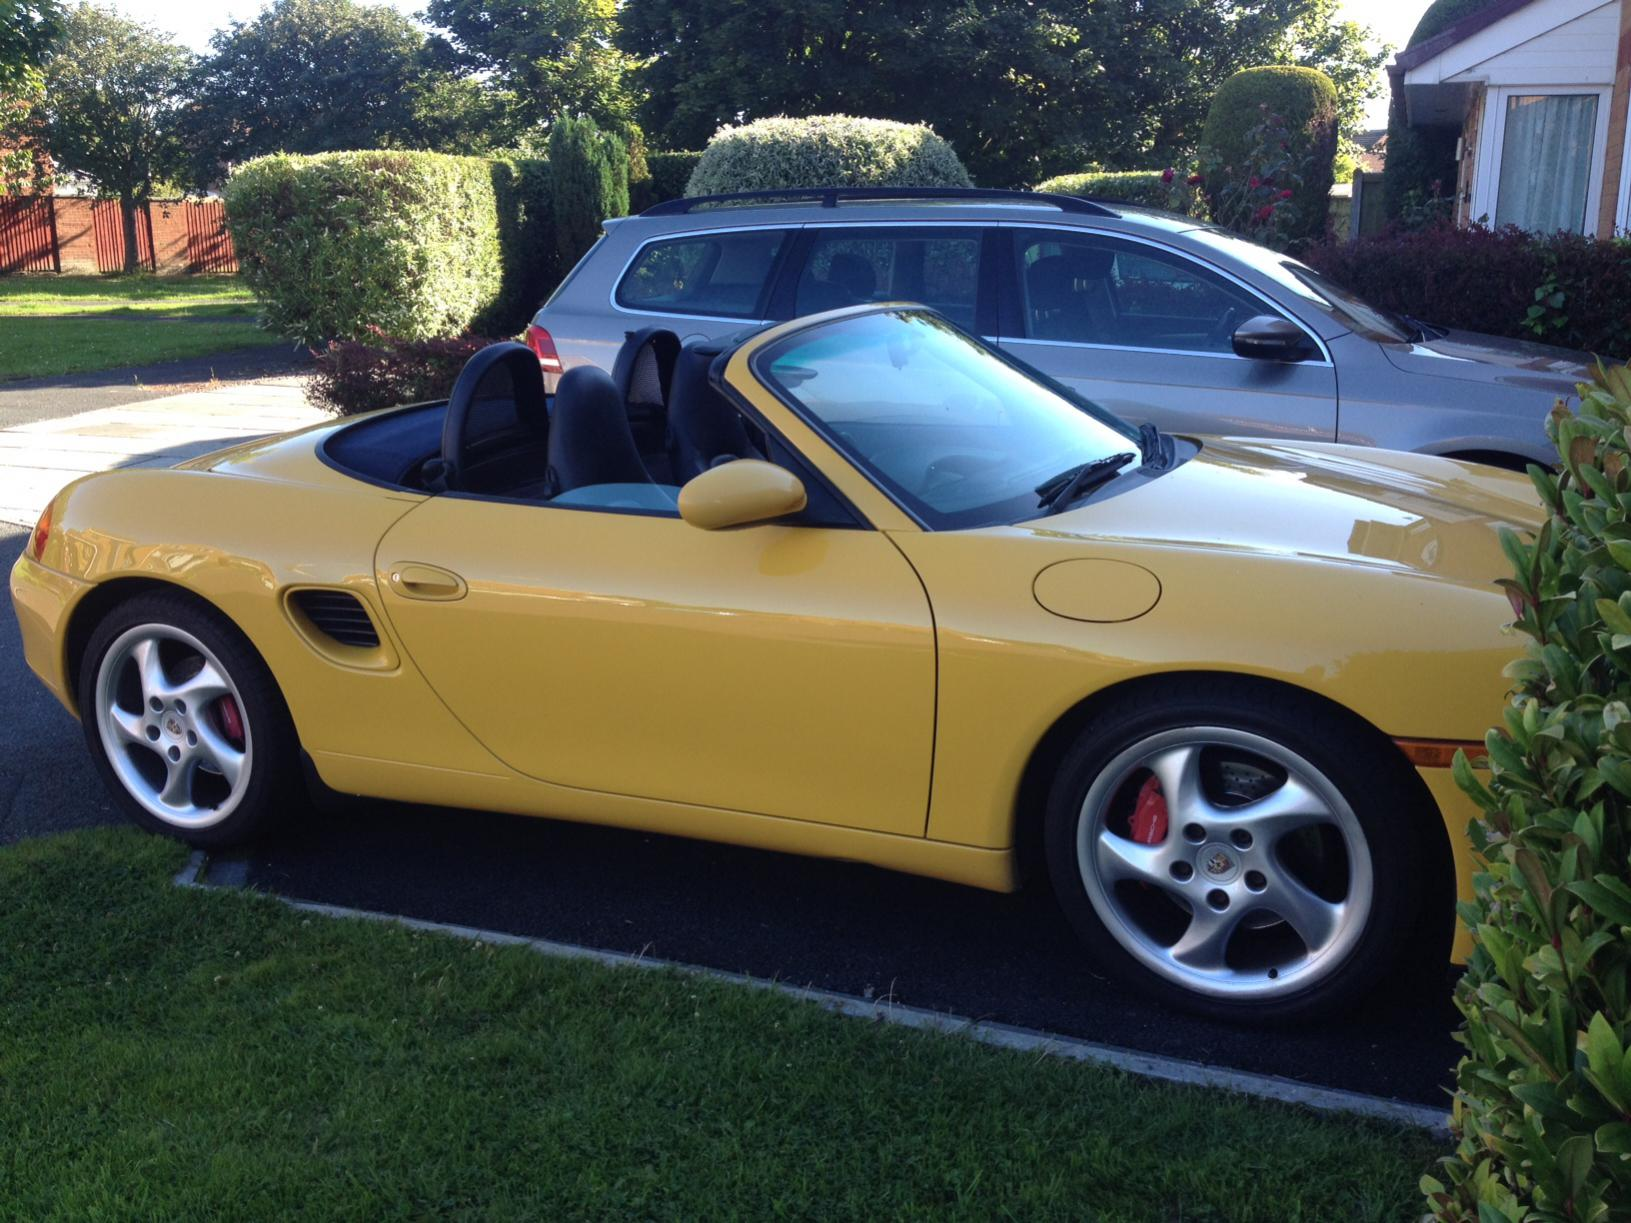 new from oklahoma 986 forum for porsche boxster owners